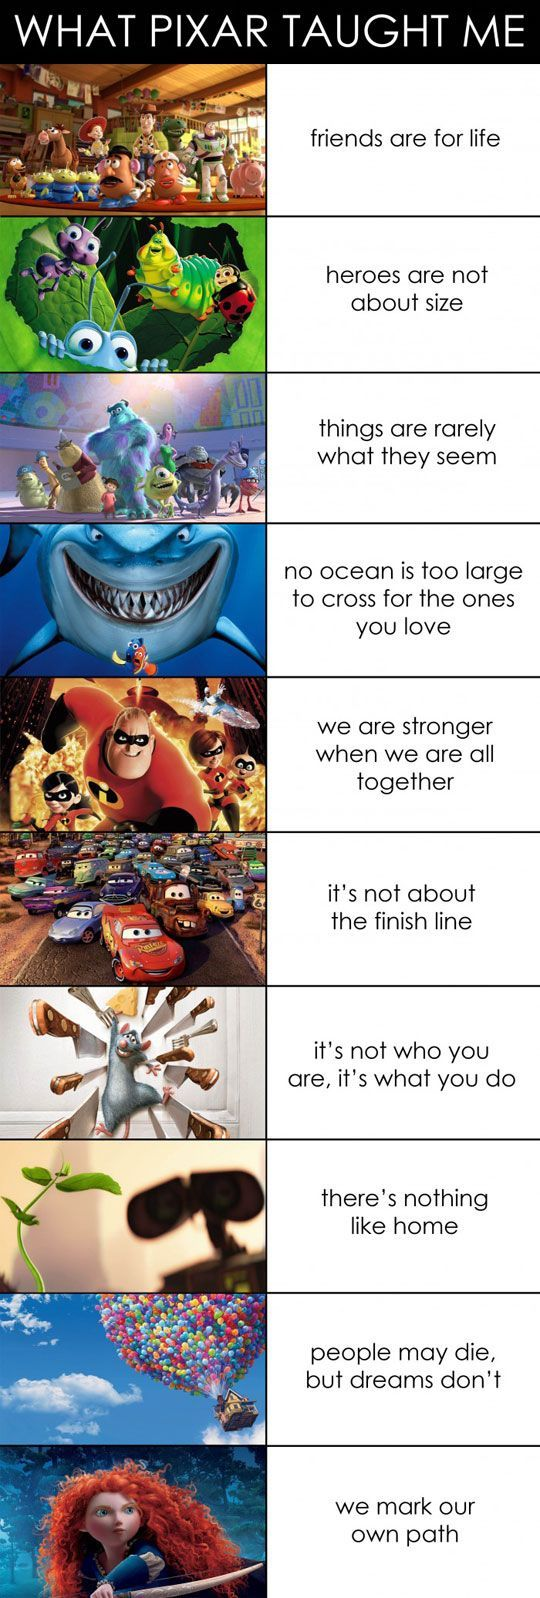 10 beautiful lessons from Pixar